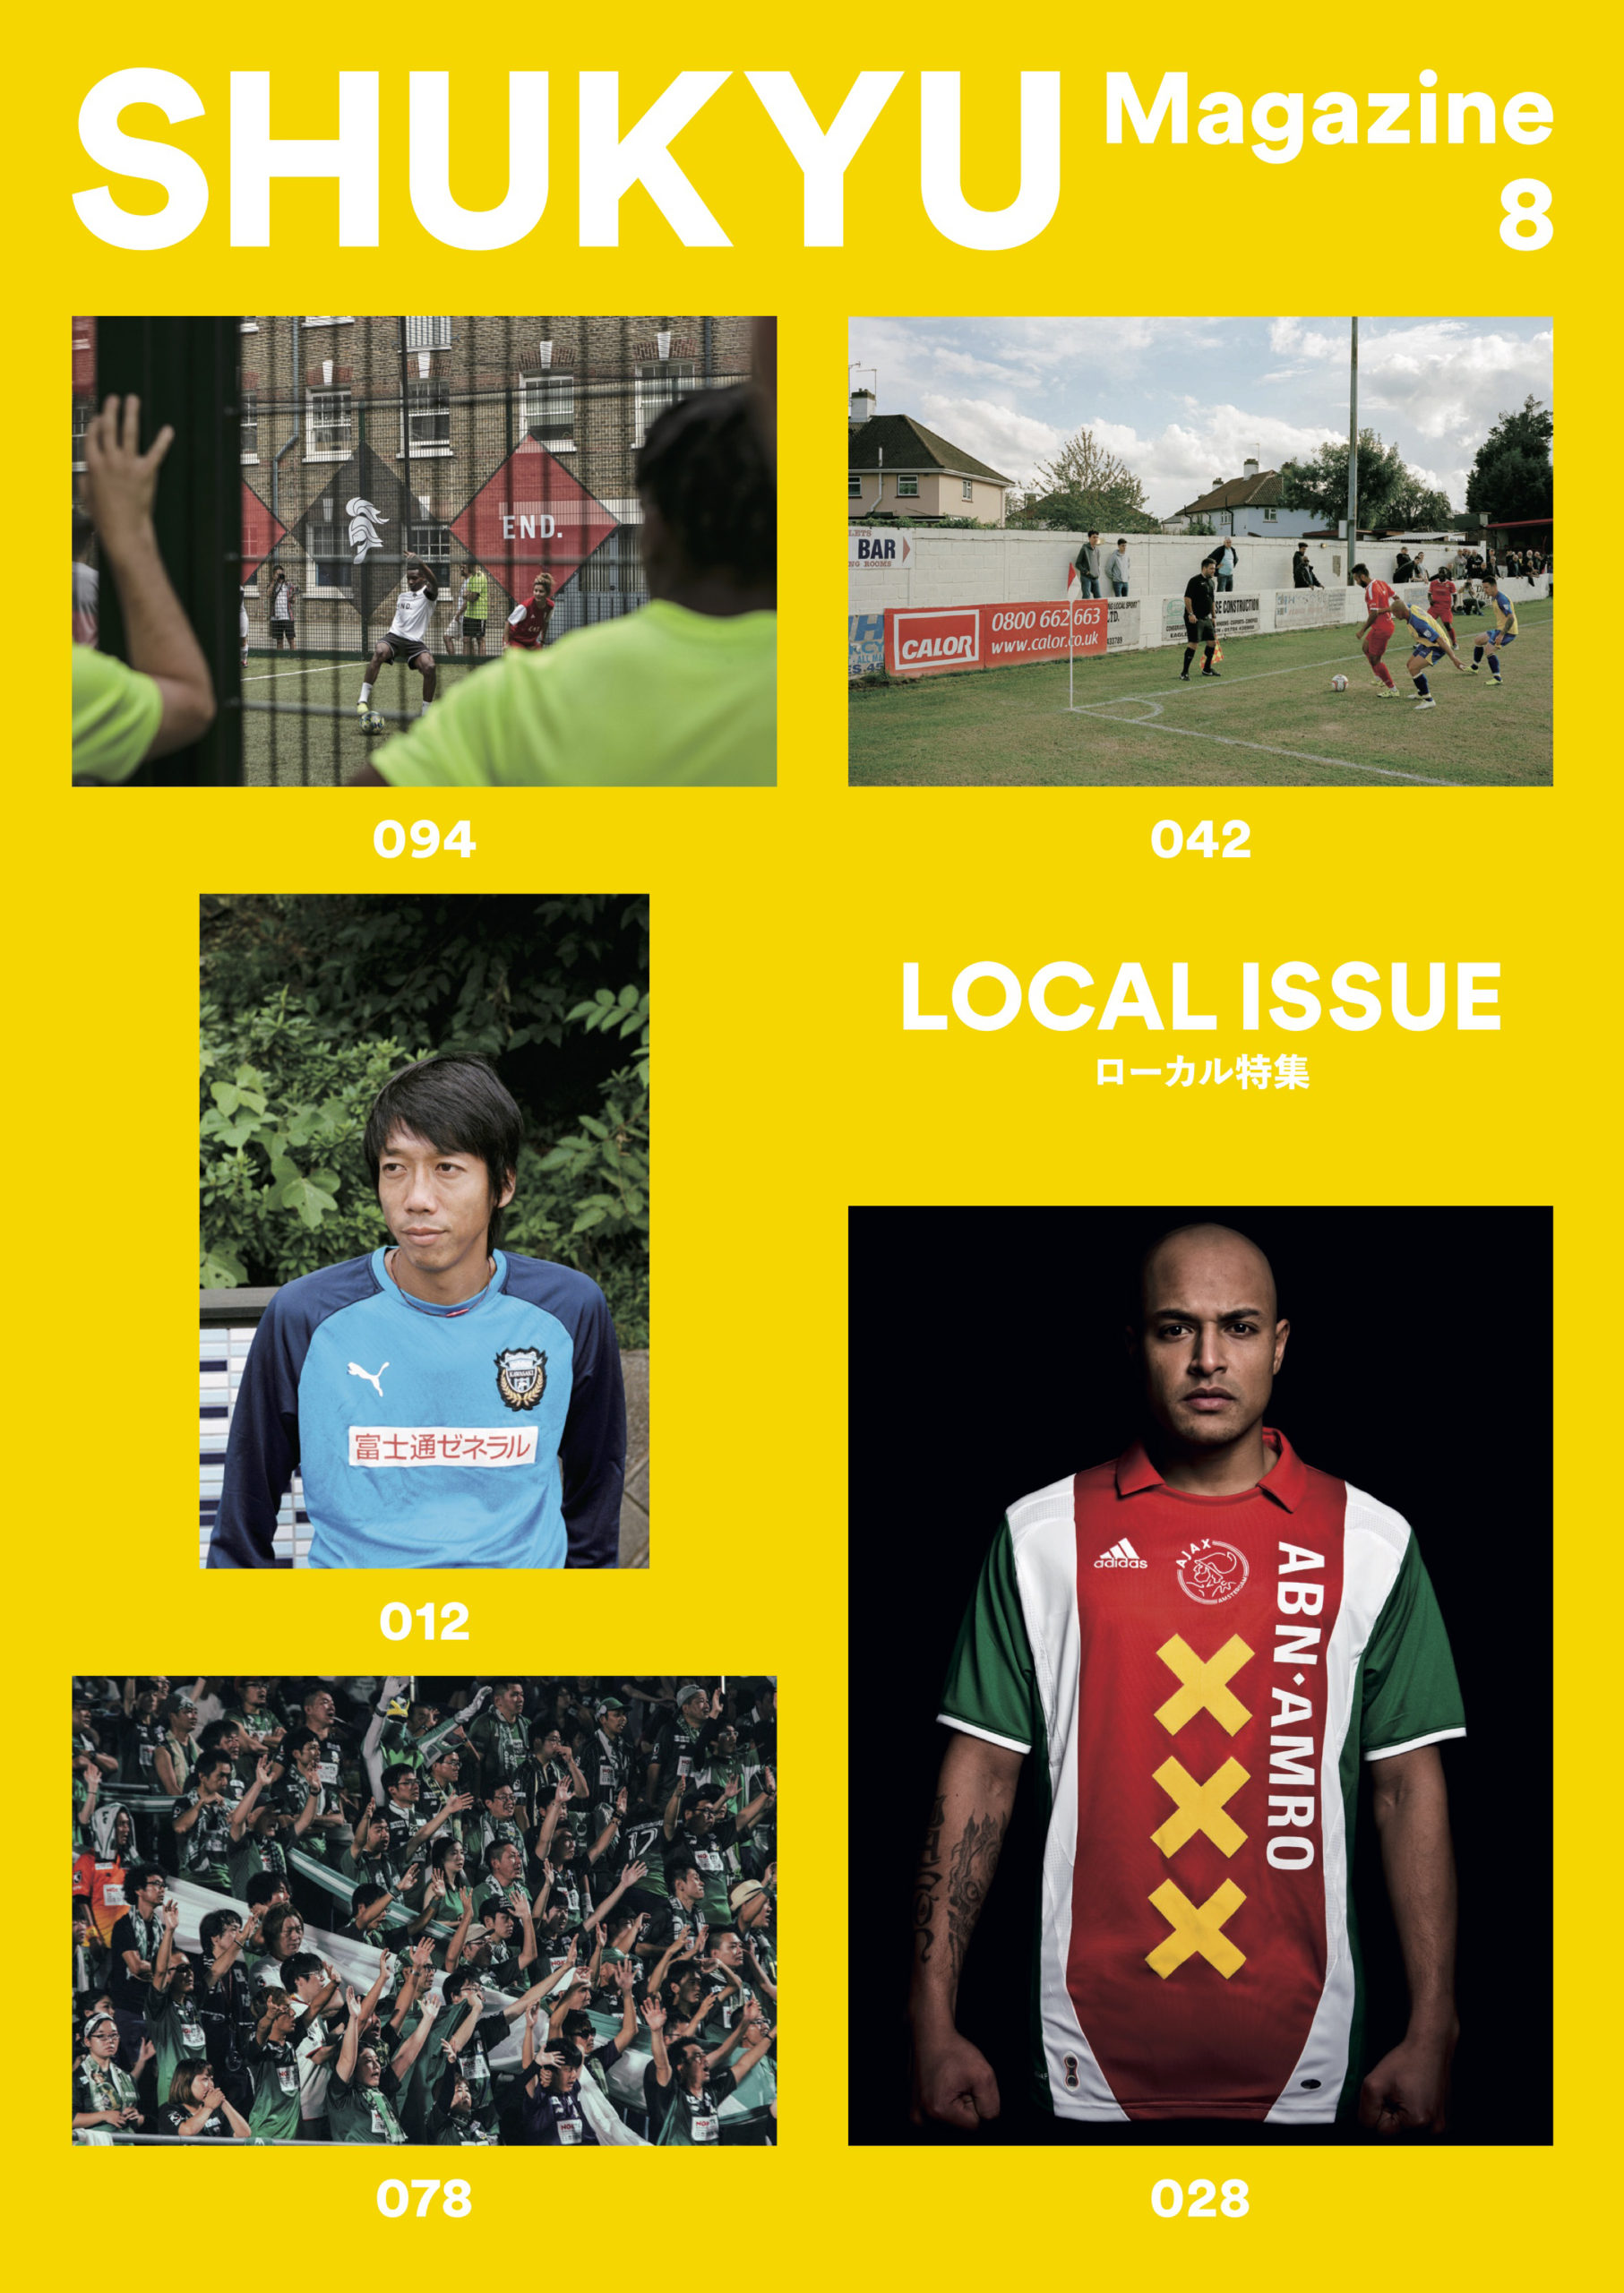 ISSUE 8 | LOCAL ISSUE